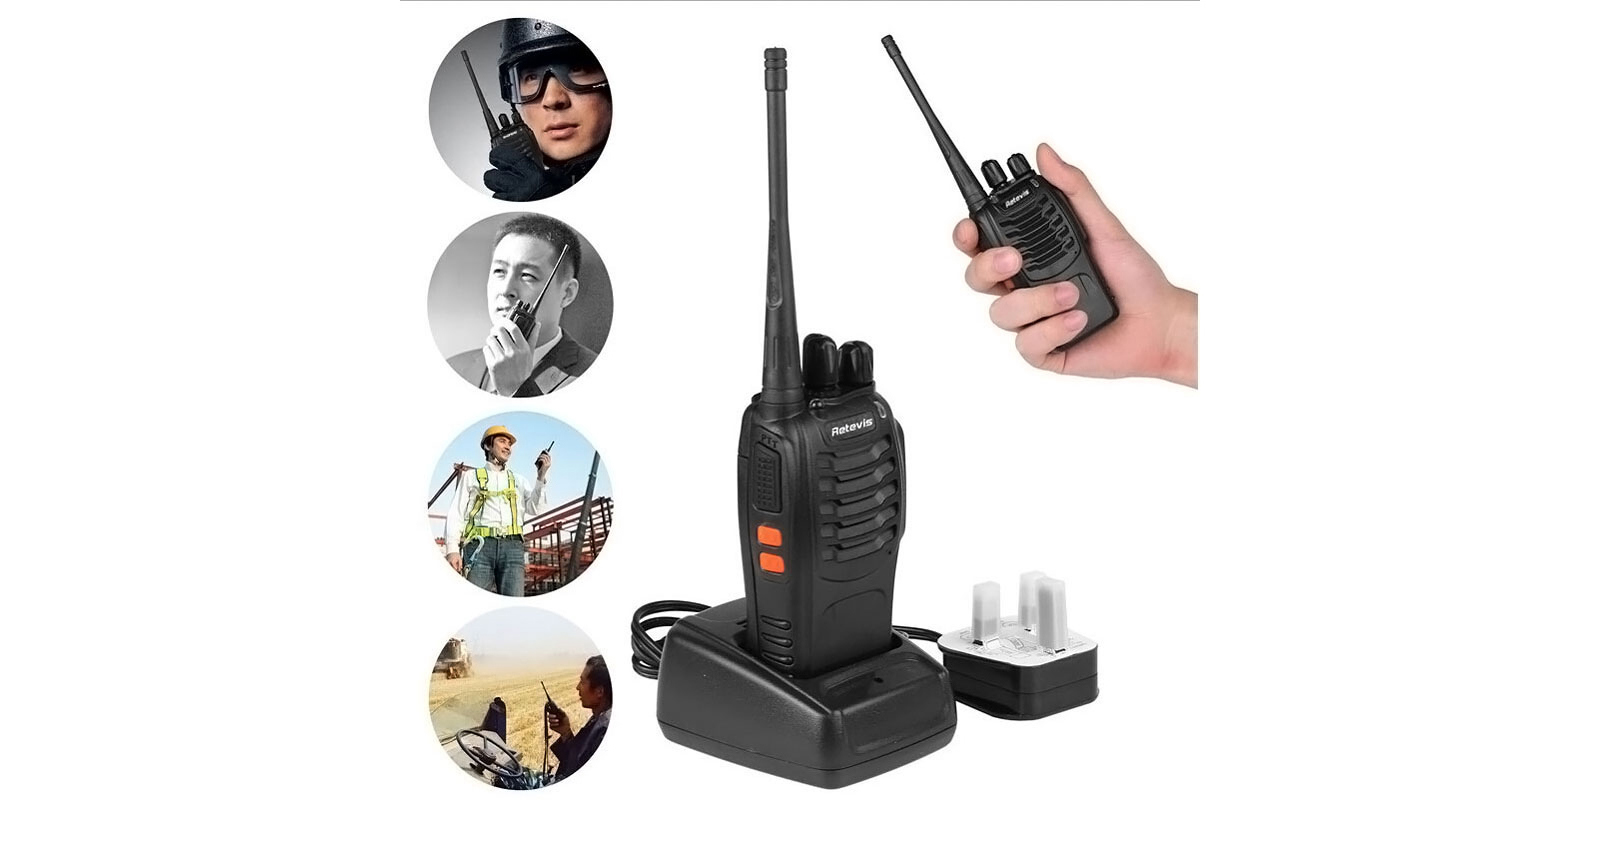 Retevis Walkie Talkie Model Distance Range